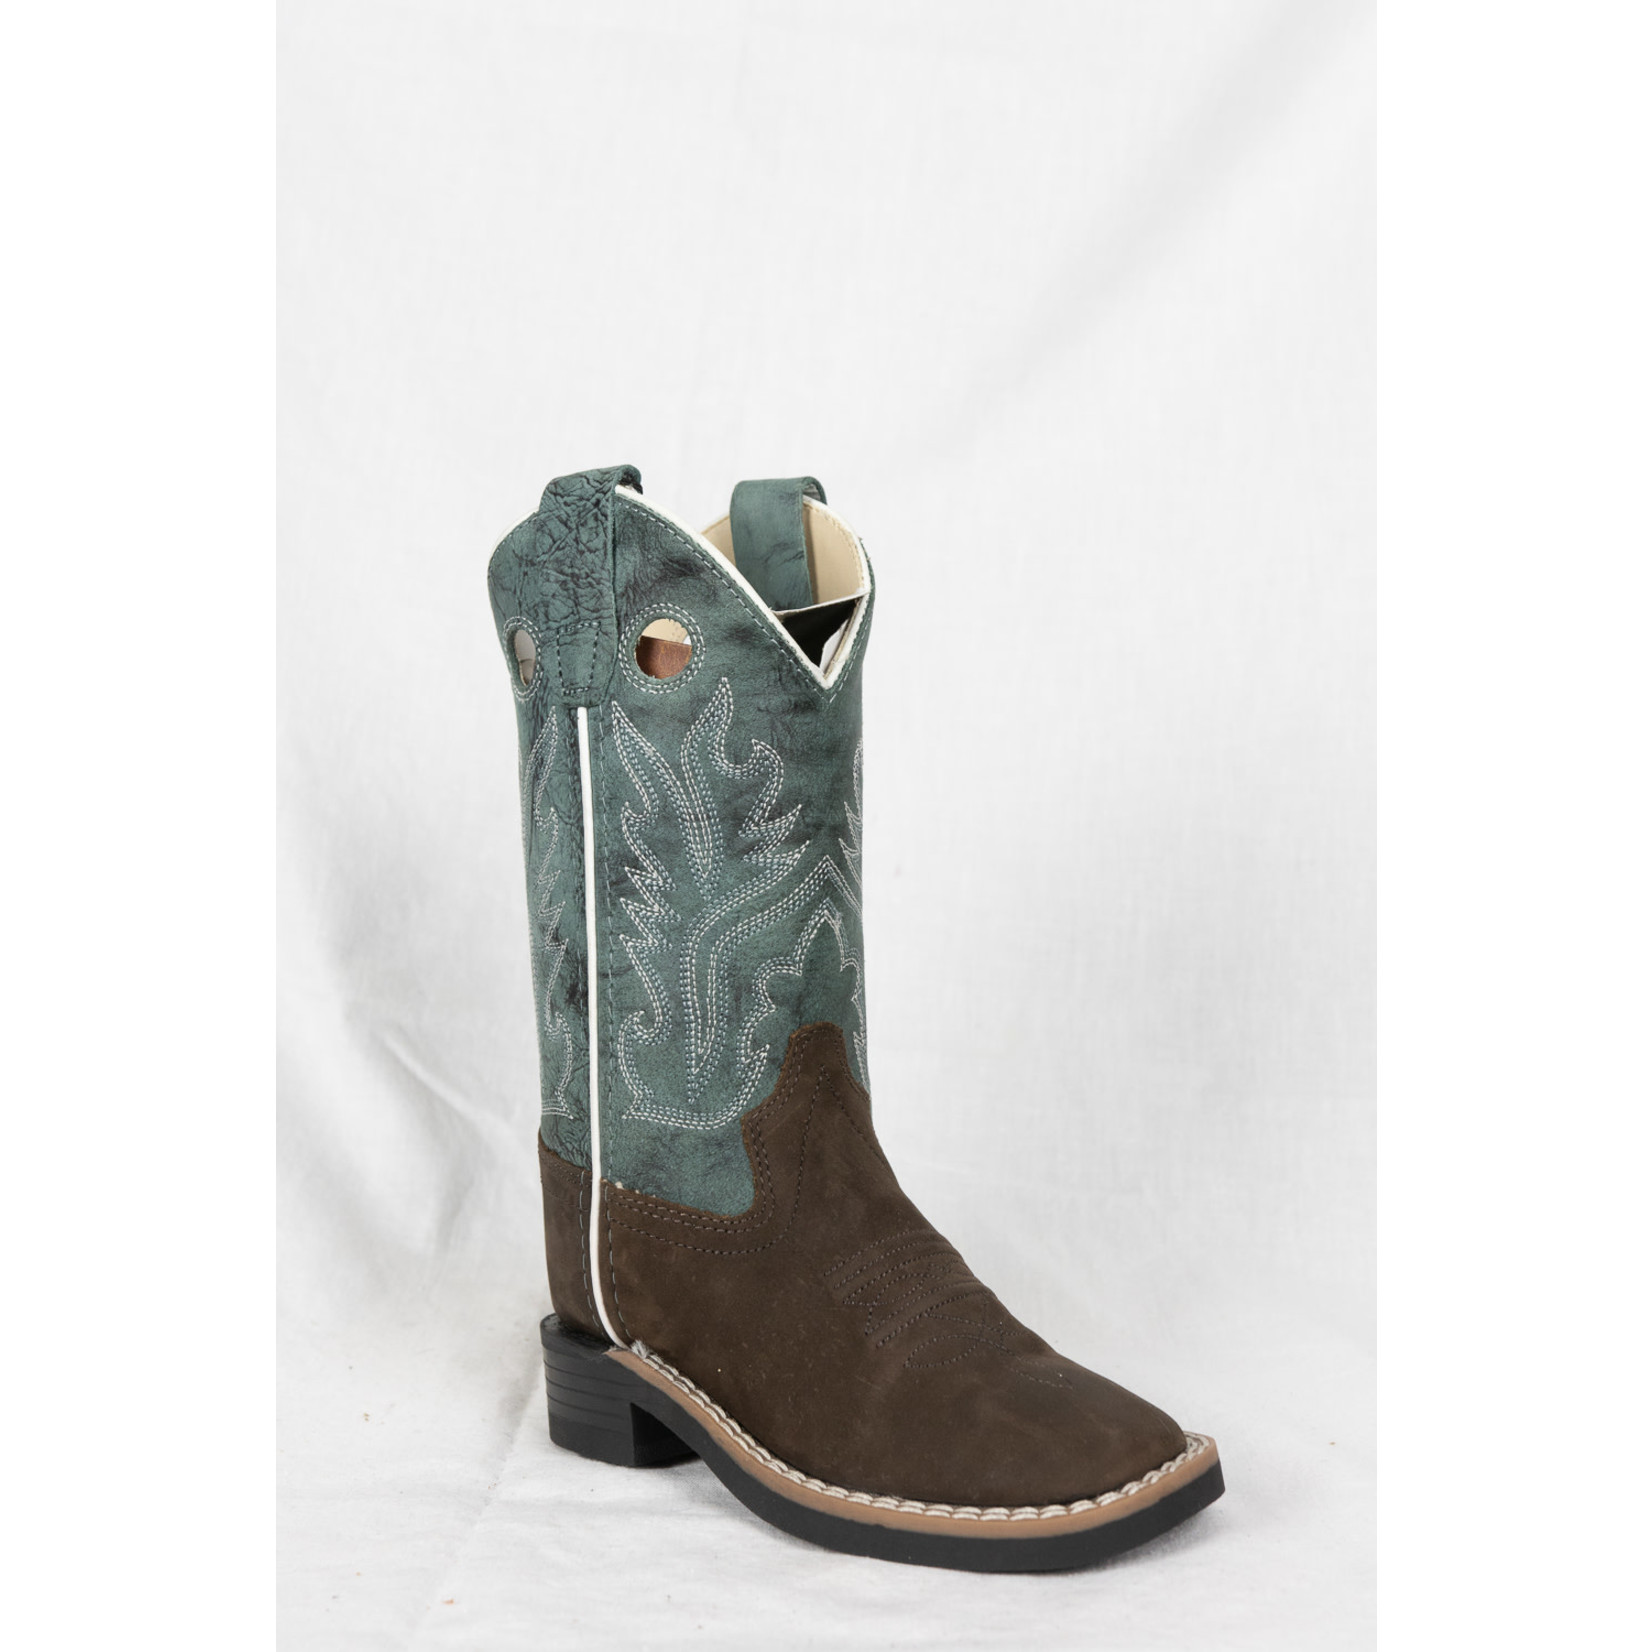 Old west Old West Brown Blue Cowboy Boot BSC 1884